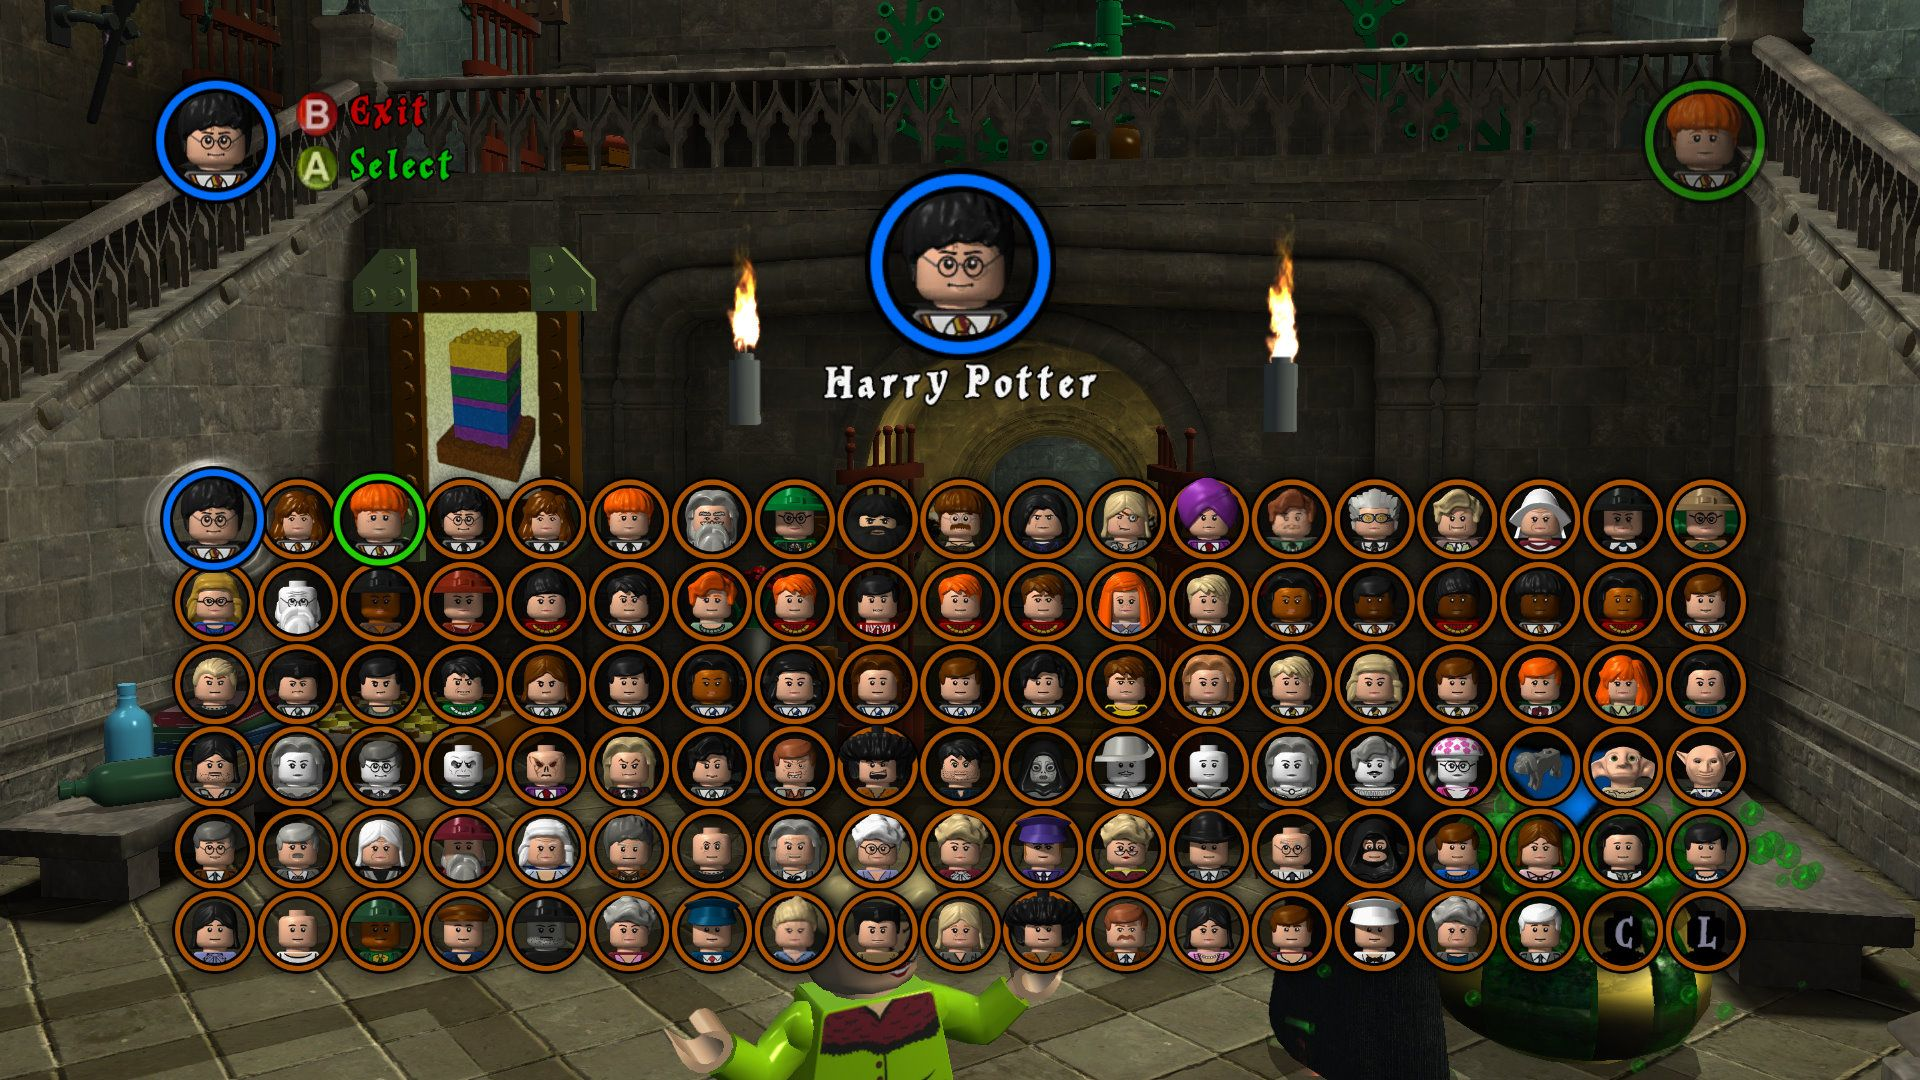 Lego Harry Potter Years 1 4 Wallpaper Characters Harry Potter Advent Calendar Lego Harry Potter Harry Potter Years